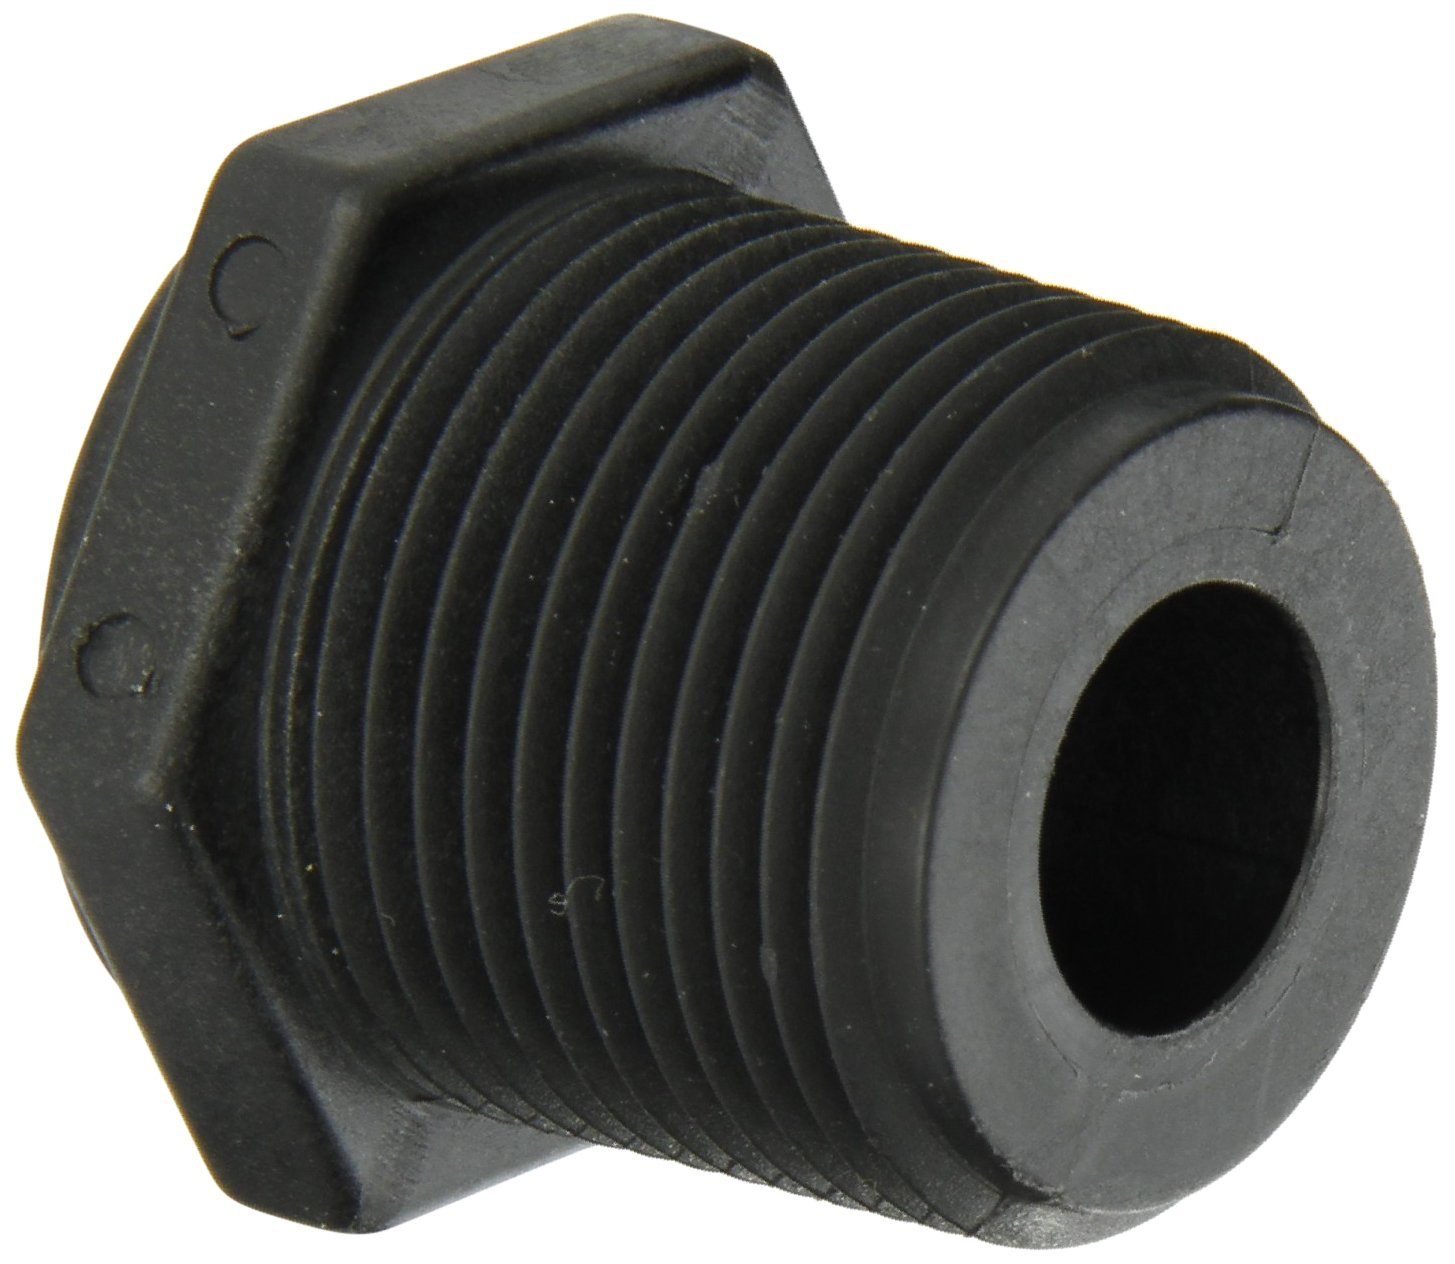 Banjo RB100-050 Polypropylene Pipe Fitting Schedule 80 1 NPT Male x 1//2 NPT Female Reducing Bushing